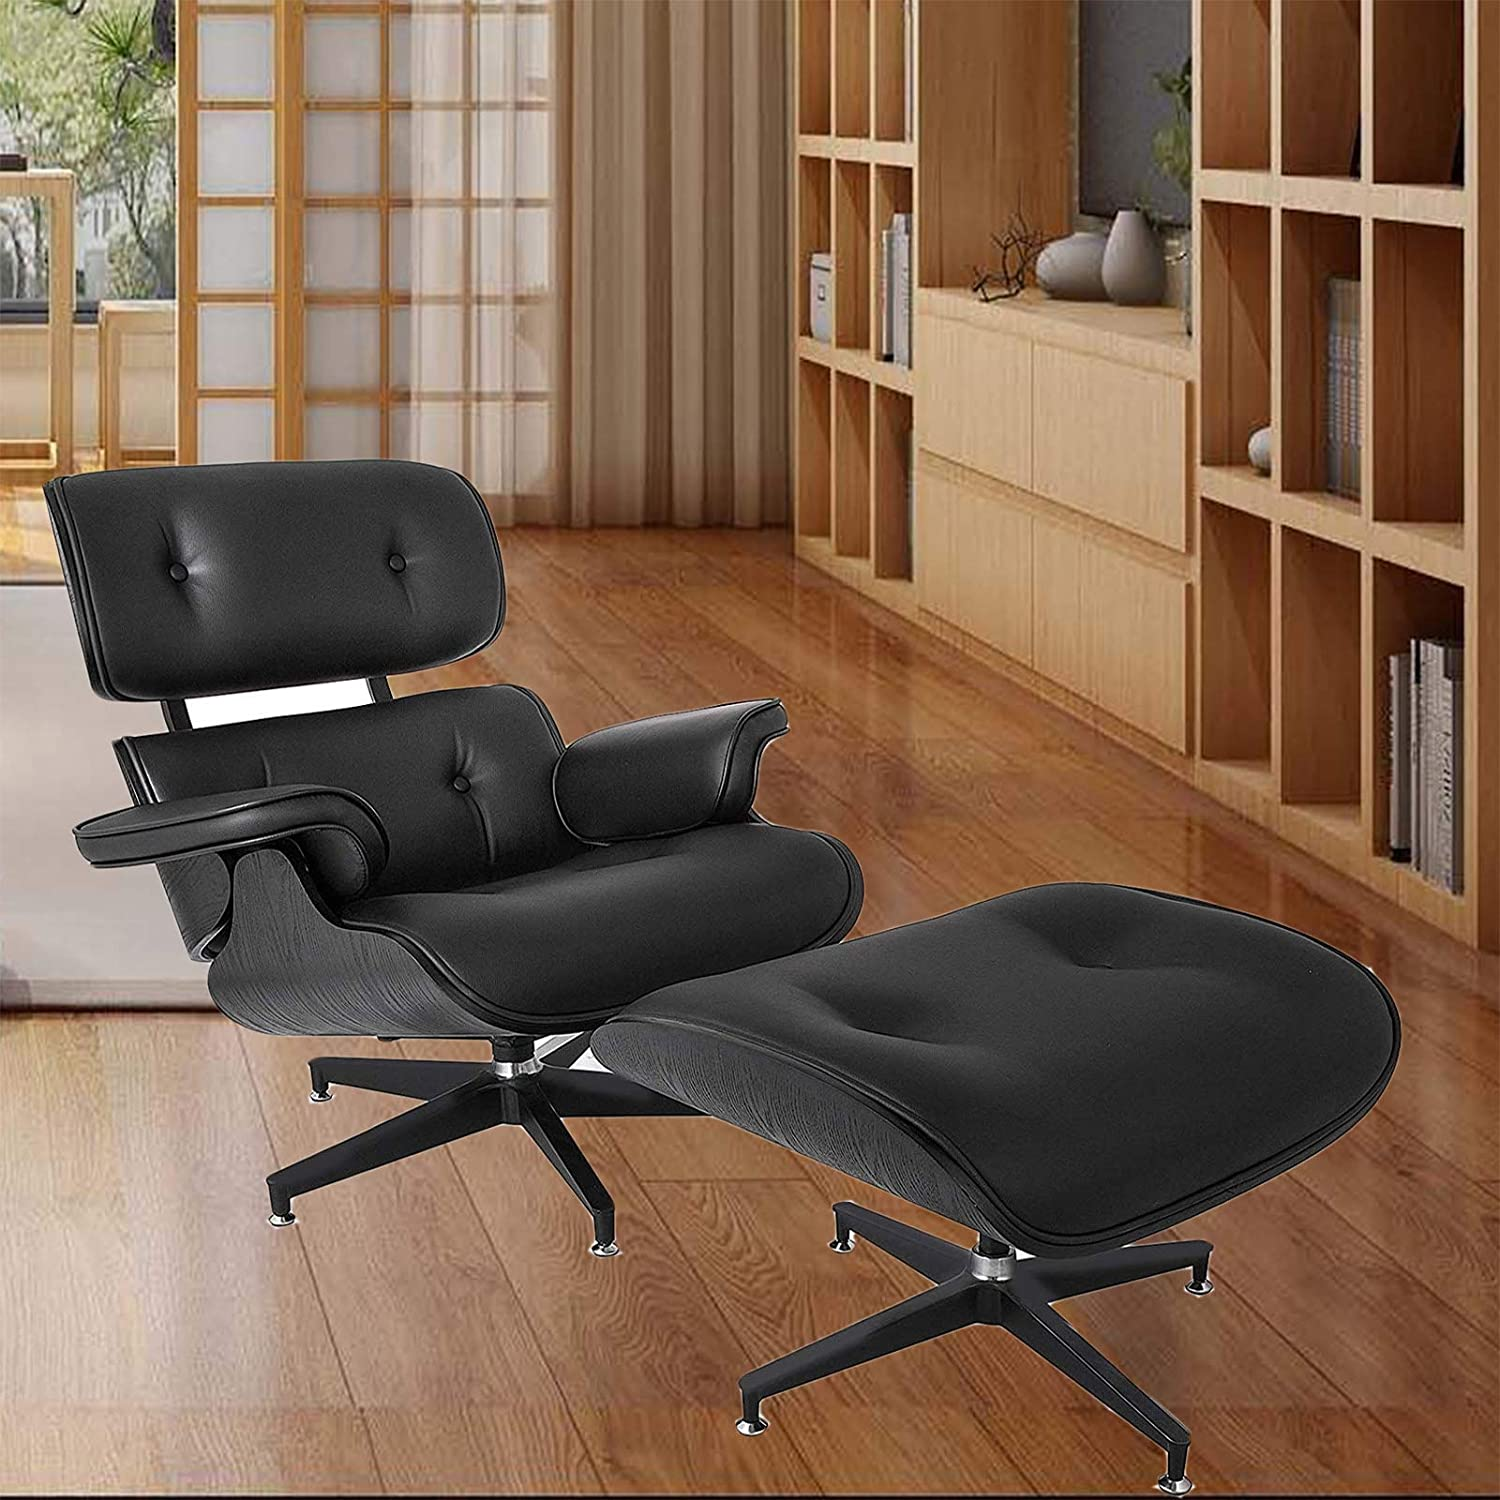 Mophorn lounge chair with ottoman mid century modern replica style recliner chair high grade all black pu leather recliner armchair with foot stool